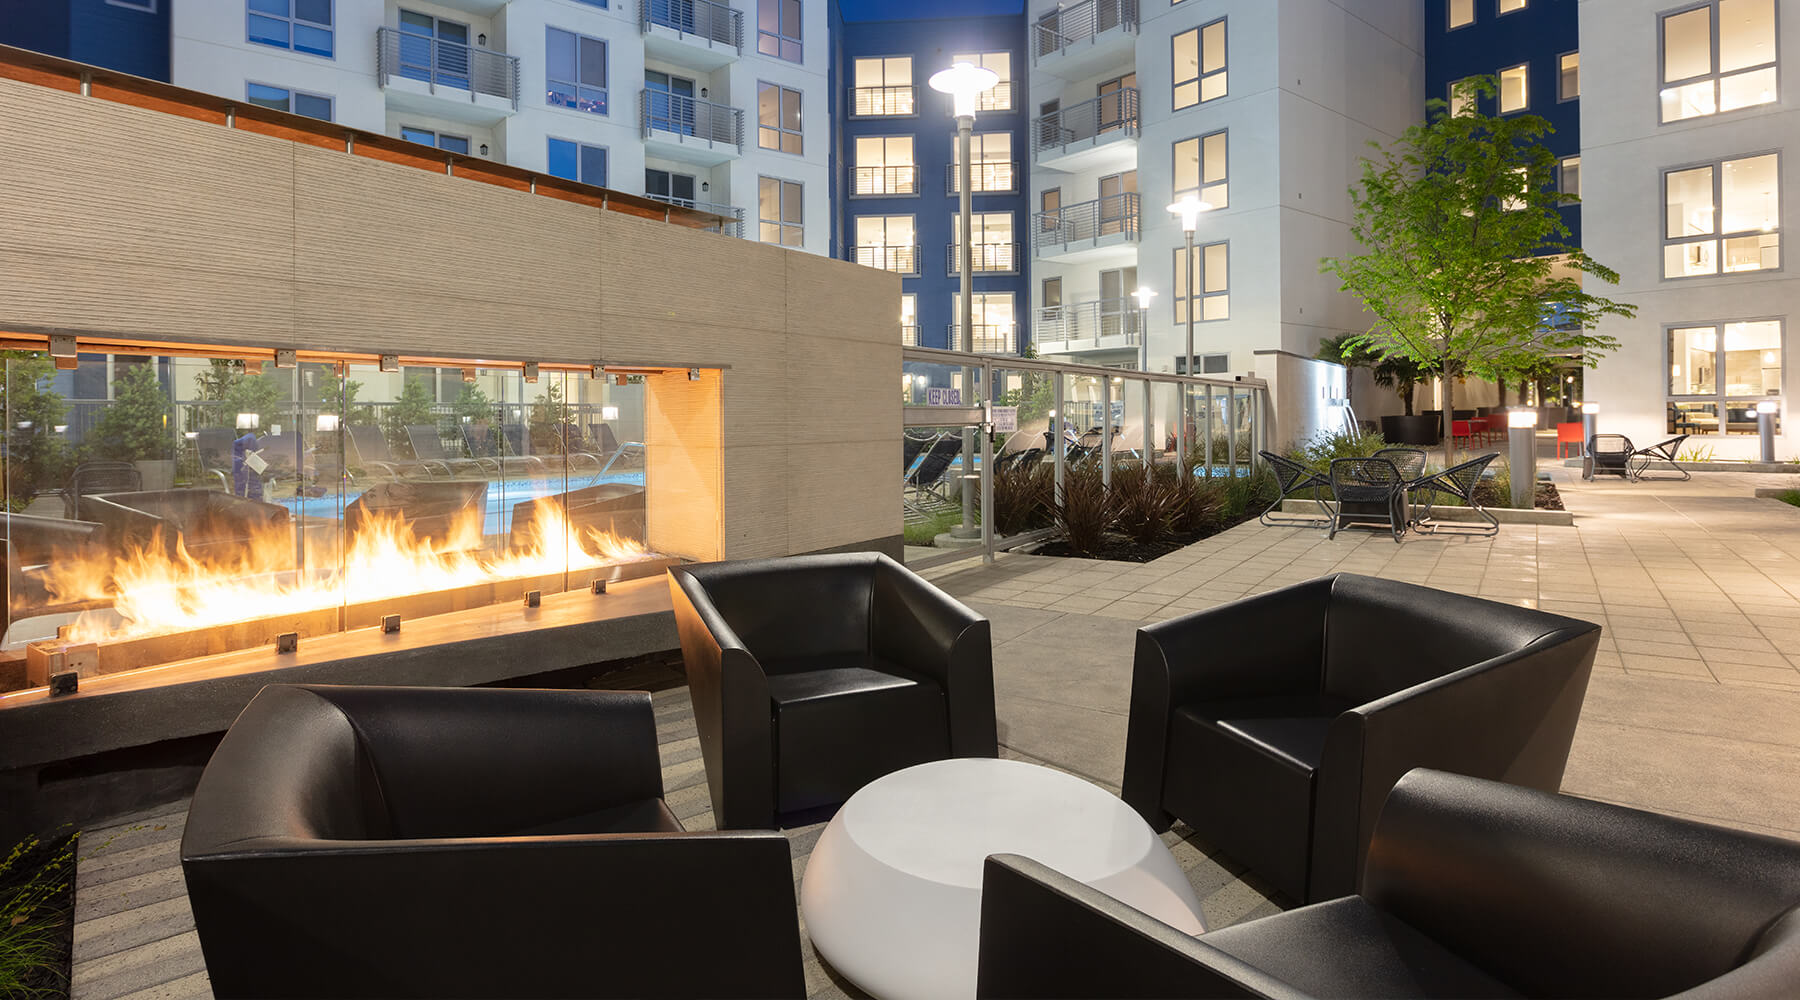 The Triton - Outdoor Fireplace